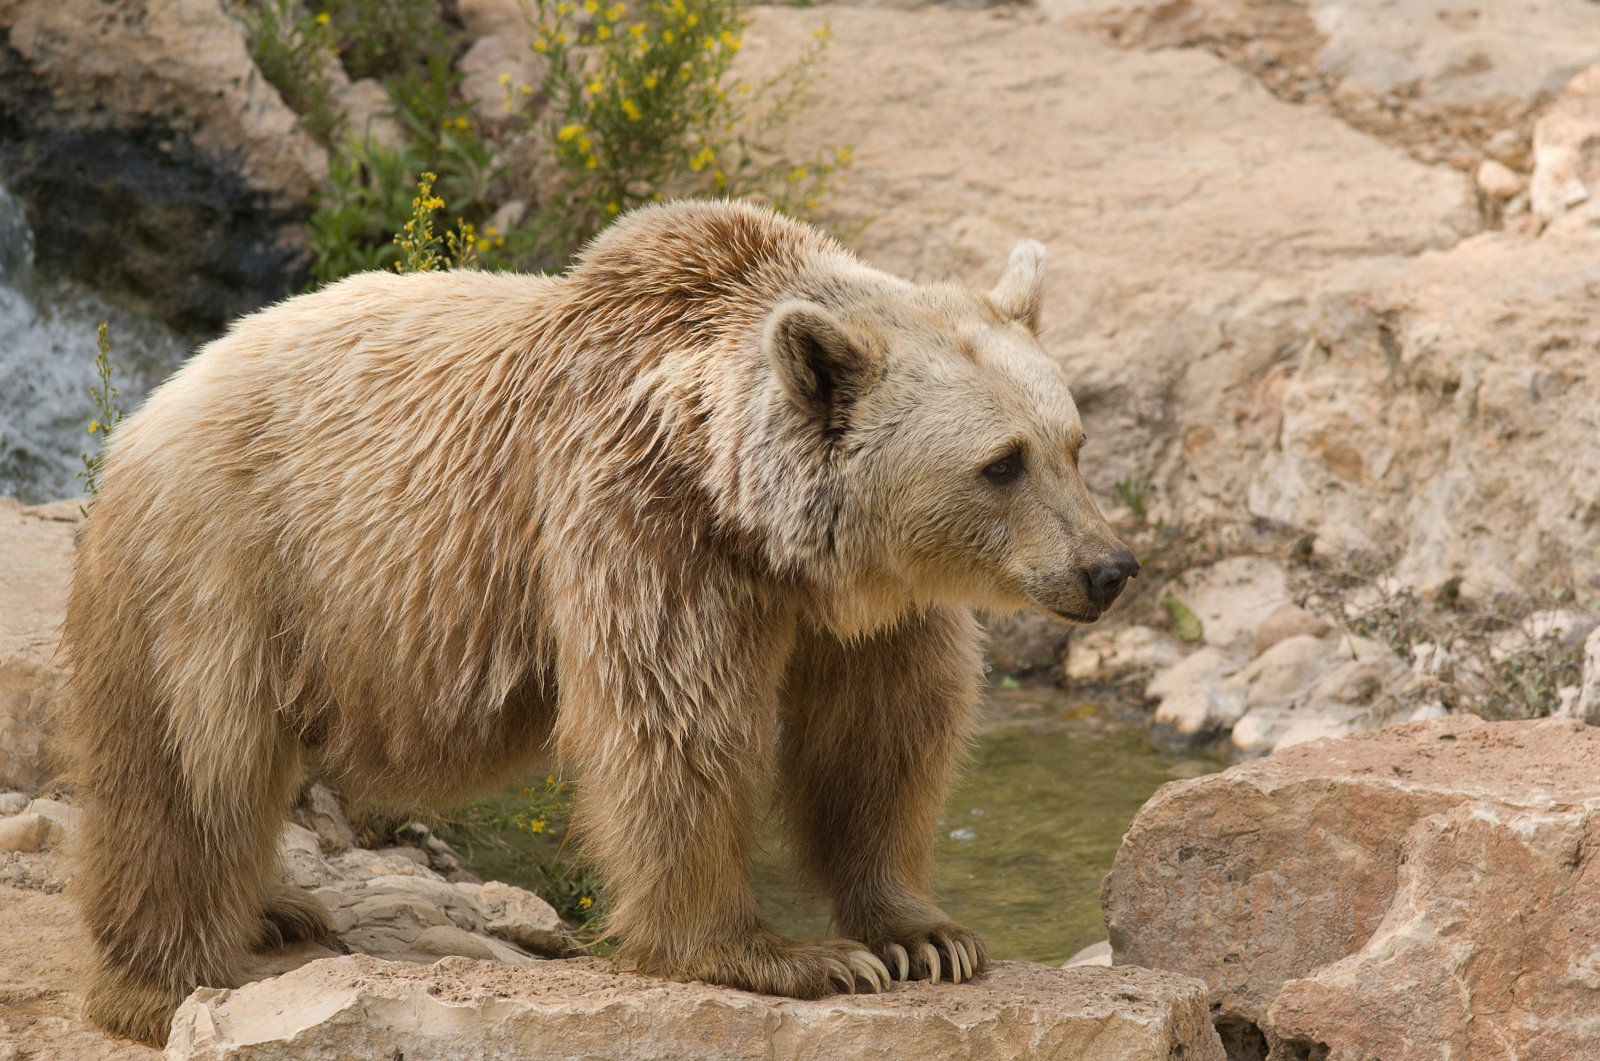 The Syrian brown bear (Ursus arctos syrianus) is the smallest subspecies of brown bear. (Shutterstock Photo)